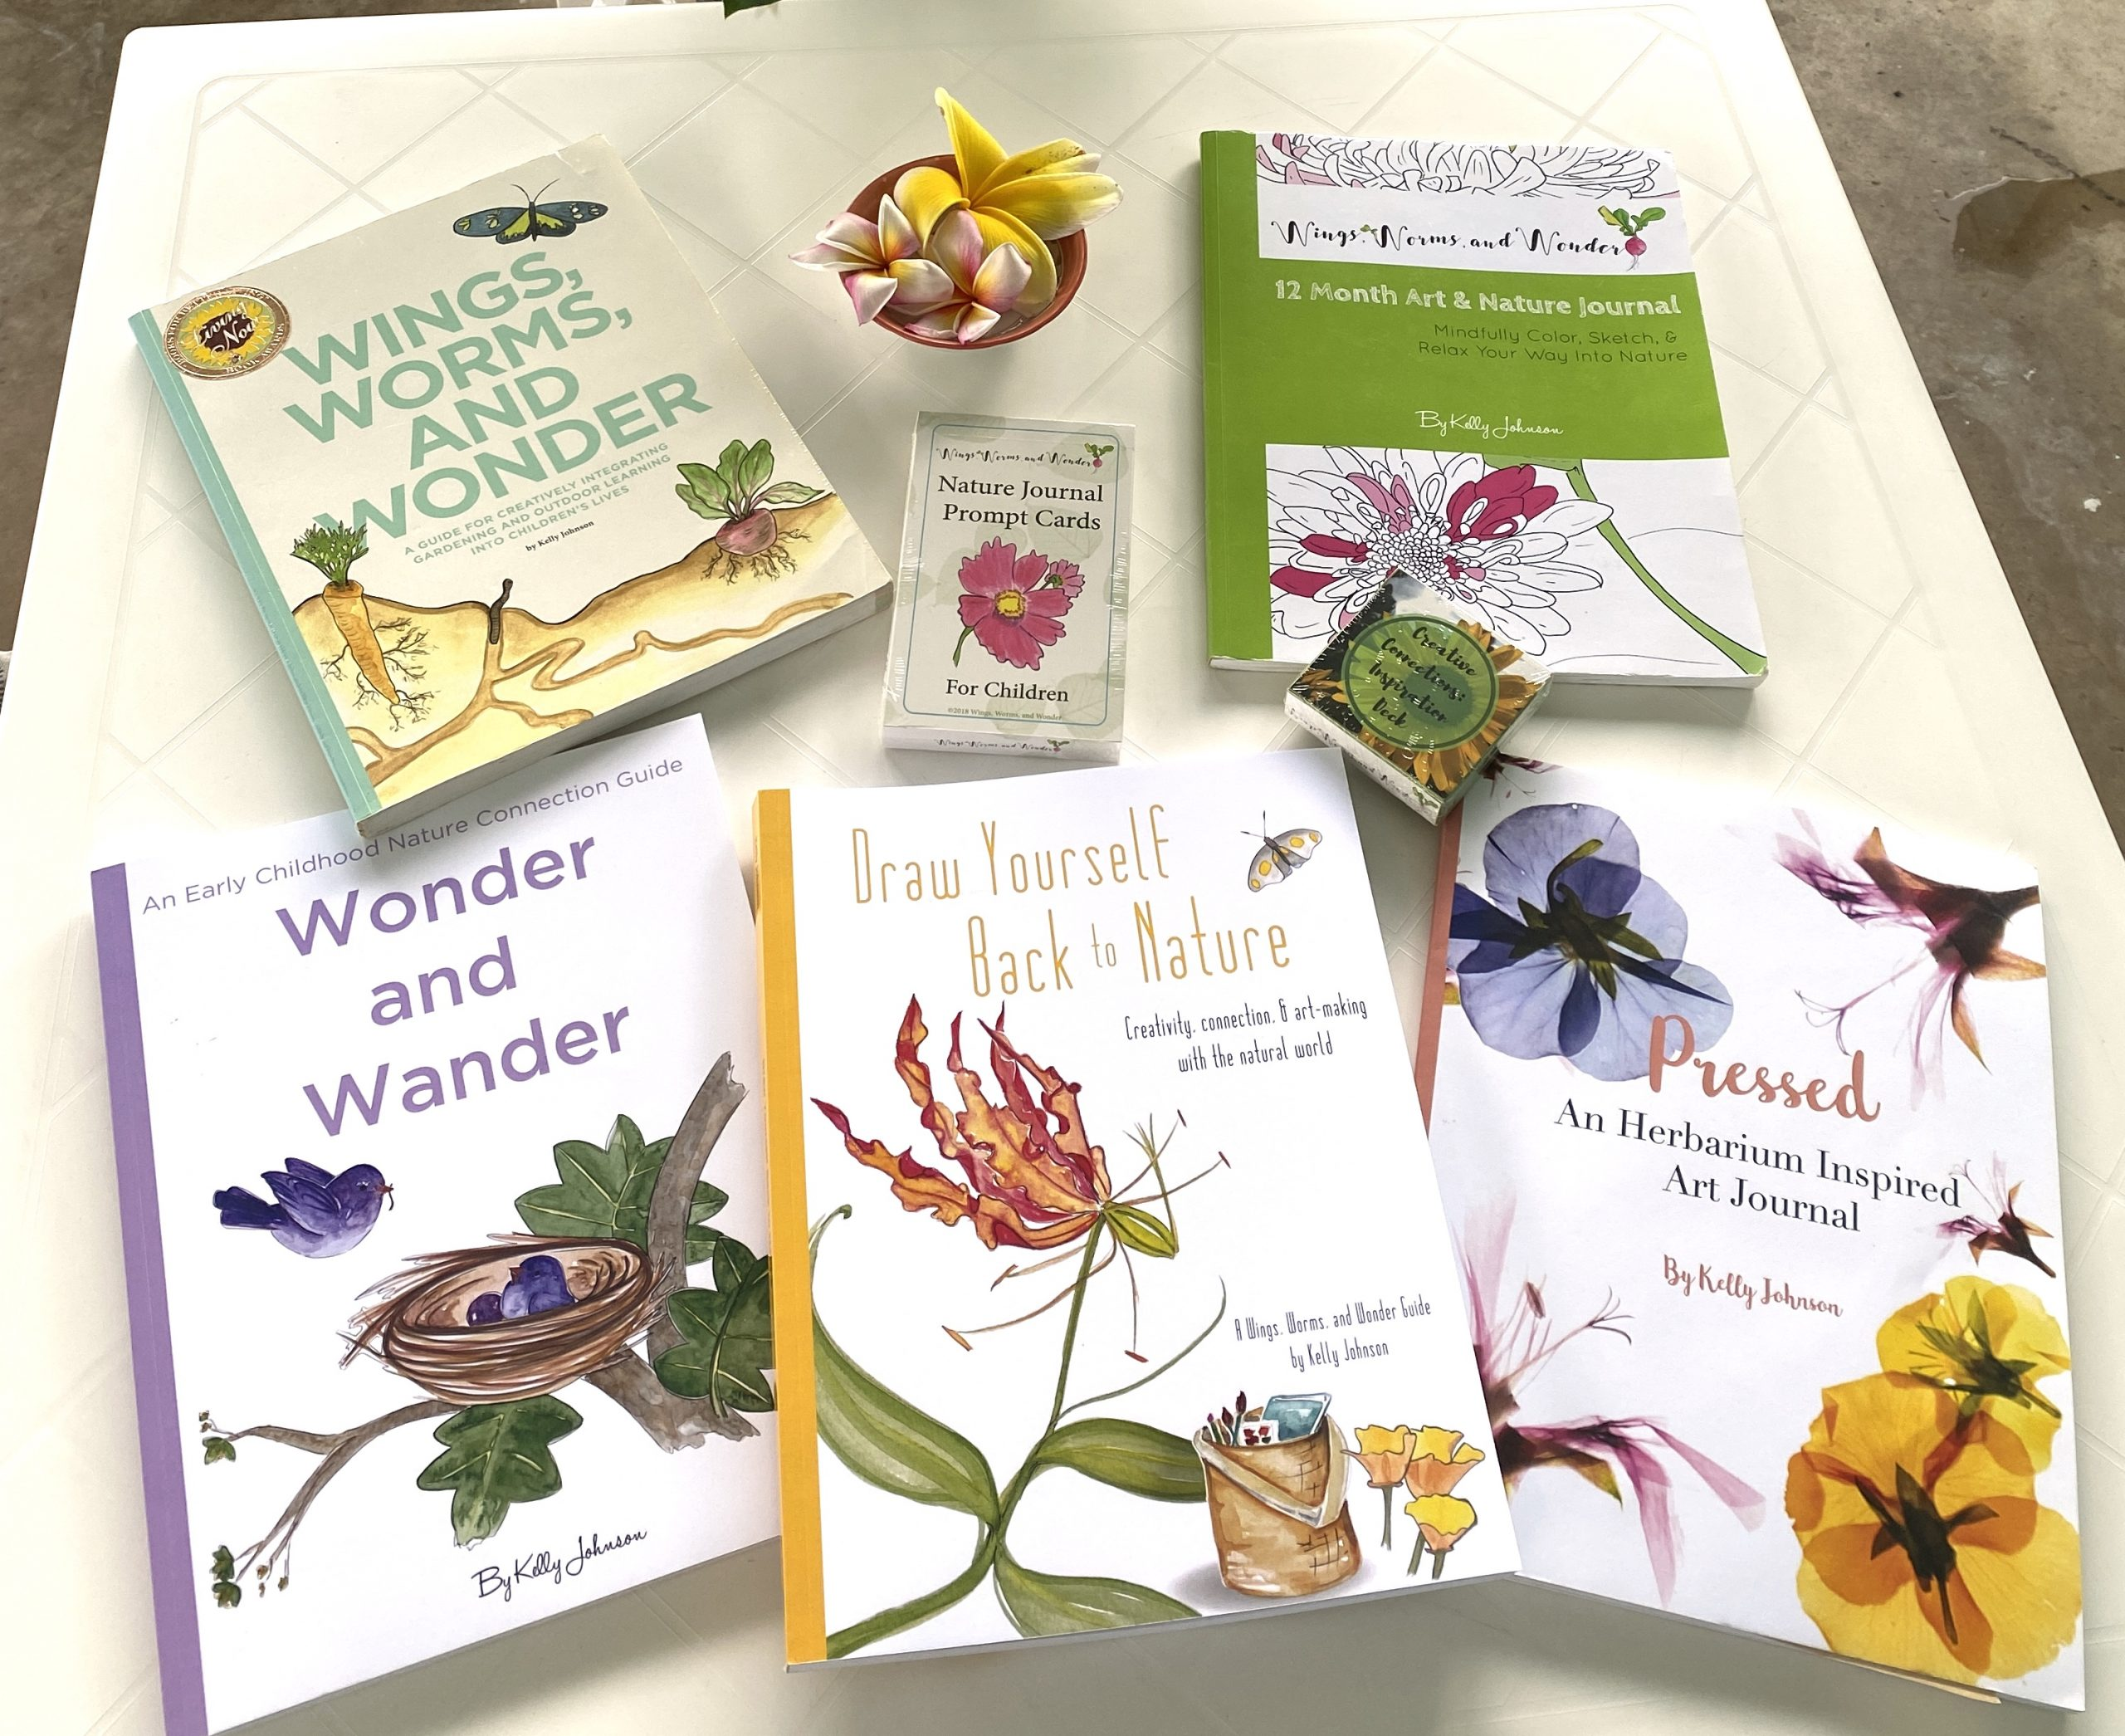 The family of Wings, Worms, and Wonder creative nature connection guide books!